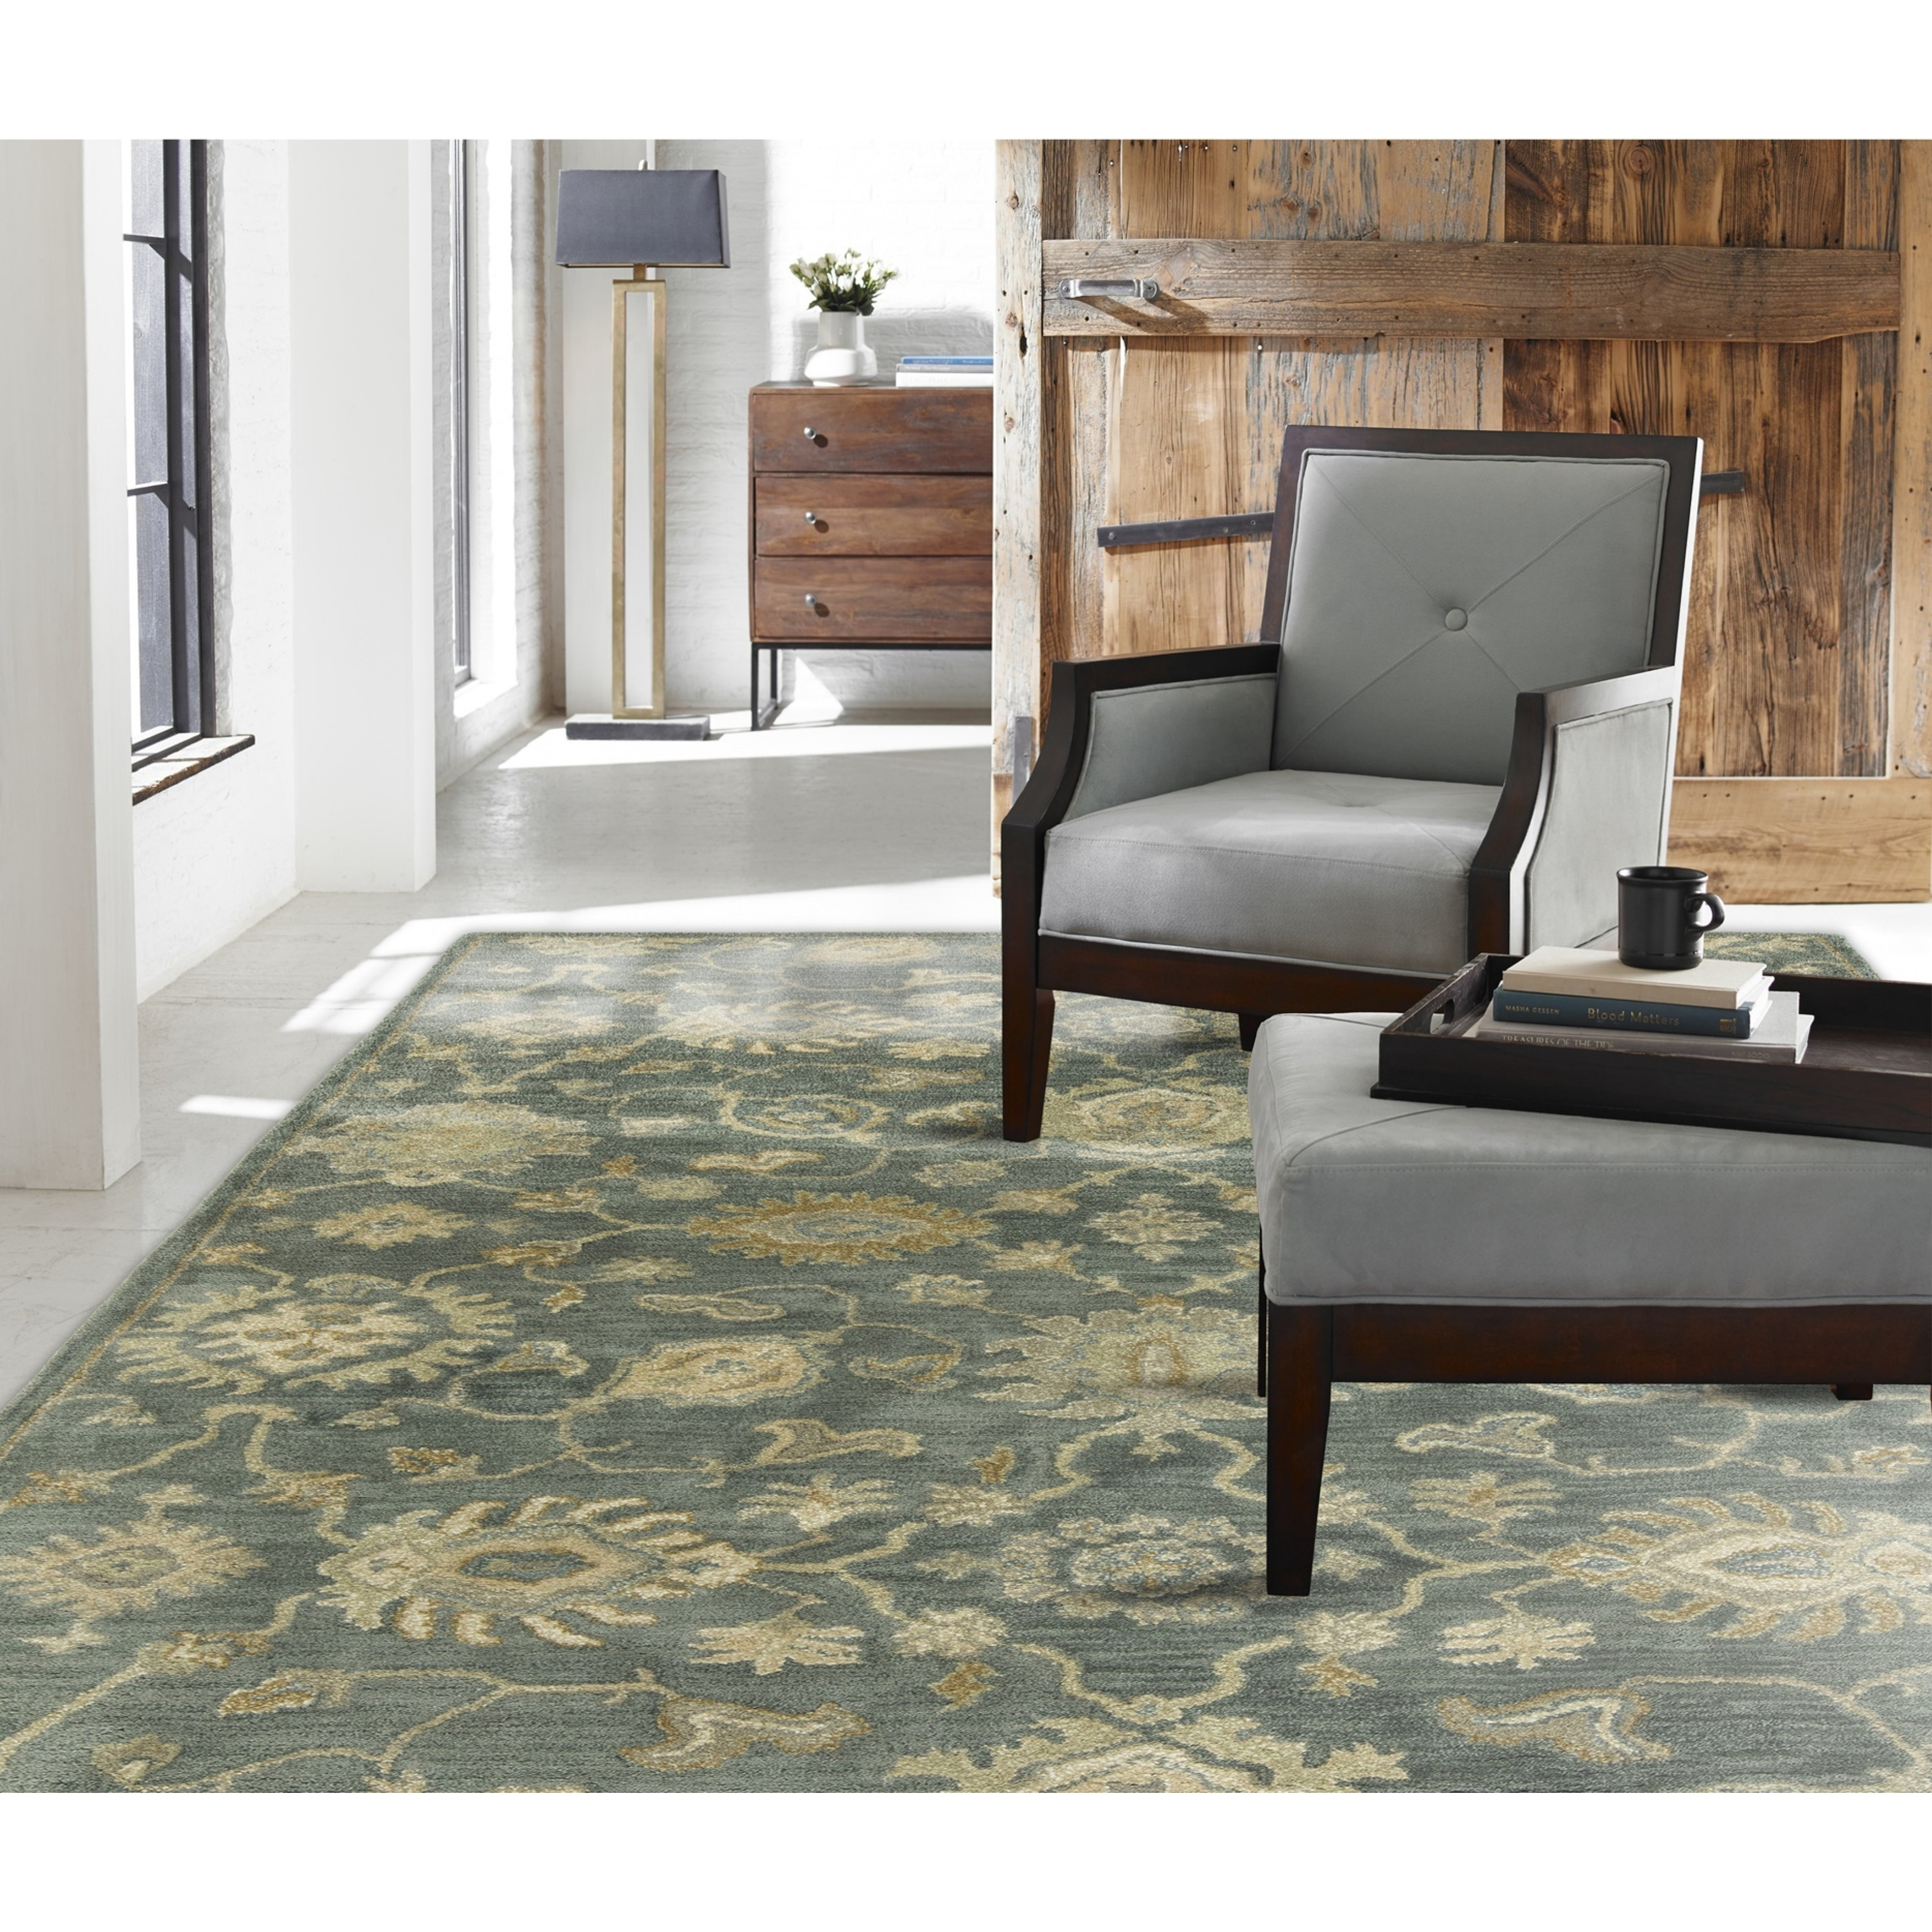 Shop seville mineral blue hand tufted area rug 76 x 96 on sale free shipping today overstock com 15859734